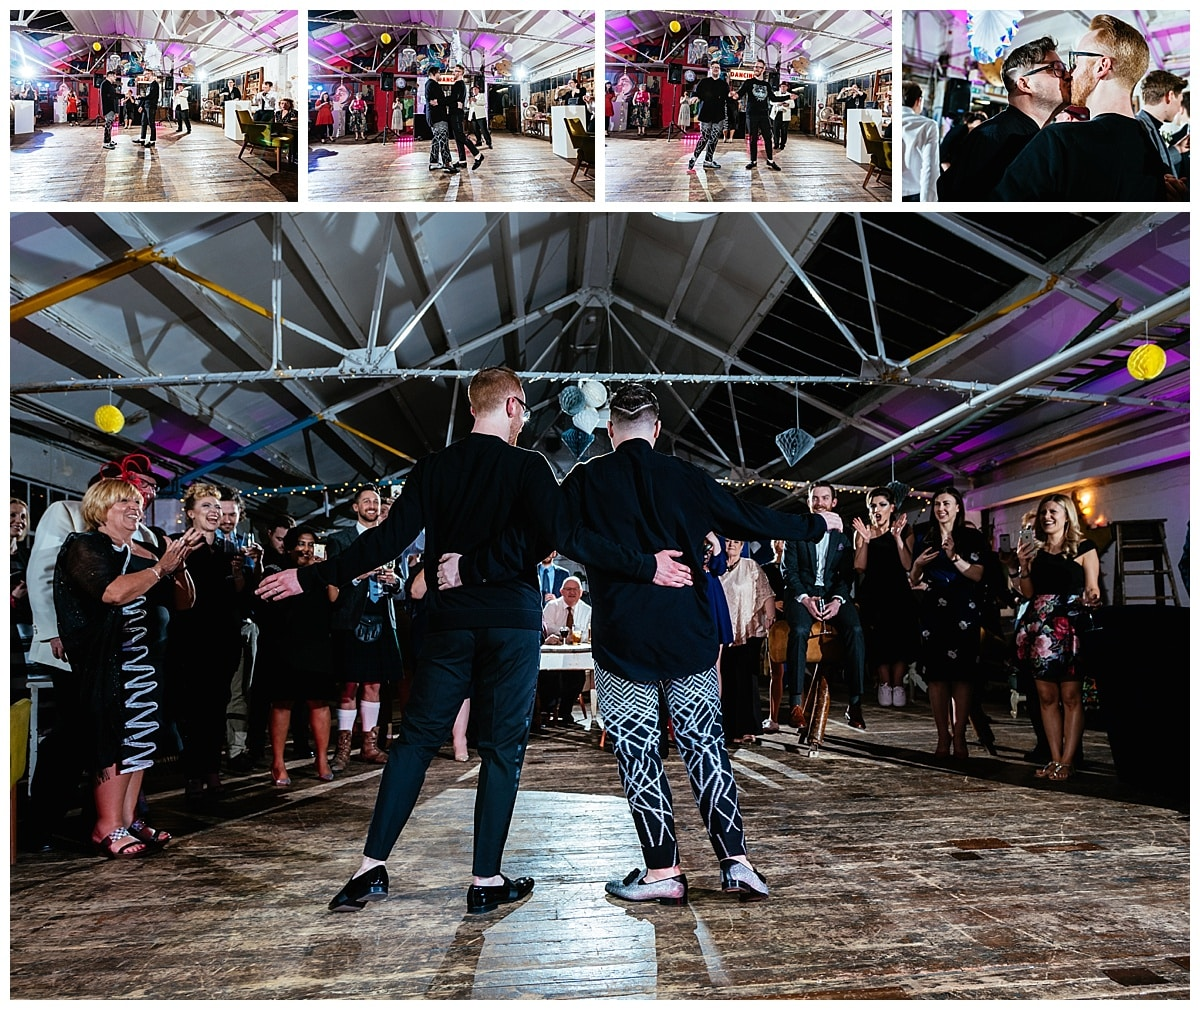 Michael James London Warehouse Hay Wedding 085-NIKON D810 14 mm 1-125 sec at f - 4.0 ISO 400 04 Mar 1855 (923)__Alternative Wedding Photographers London Gay Samesex Colourful.jpg